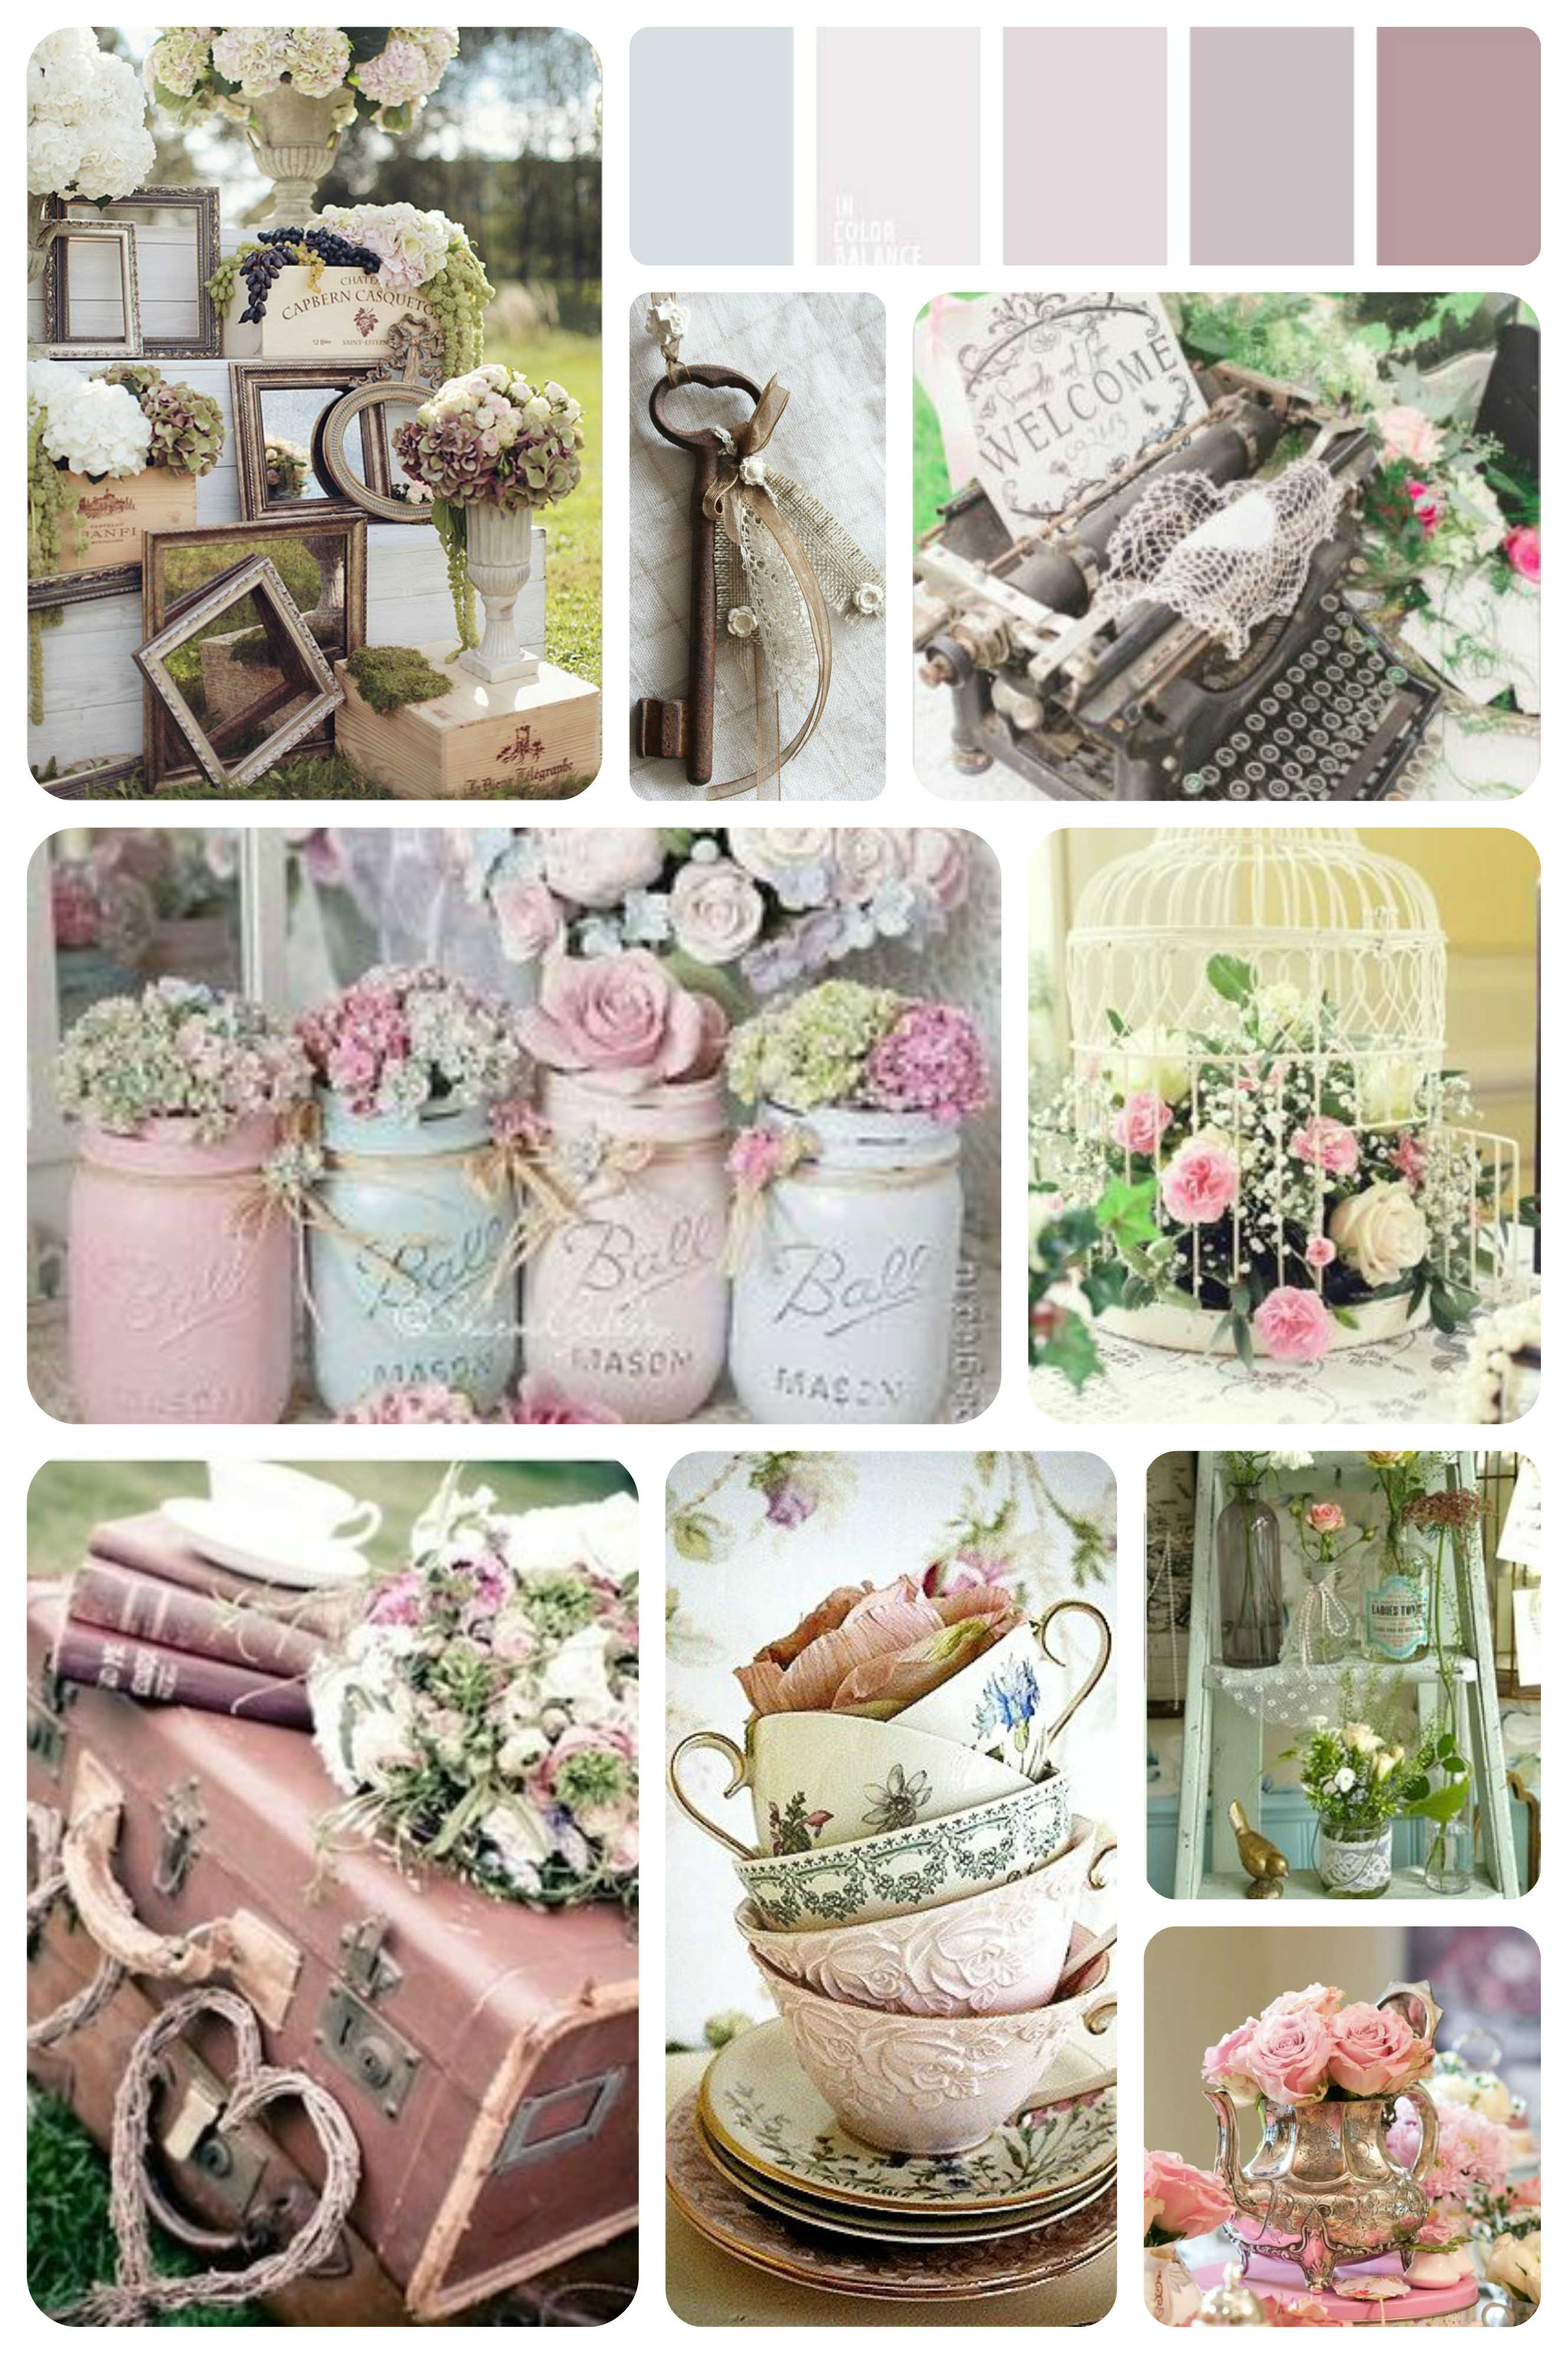 Shabby-chic-style-theme-mariage-idees-tendance-Shabby-decorations-couleurs-ambiance-cest-quoi-Shabby-chic-comment-alexa-reception